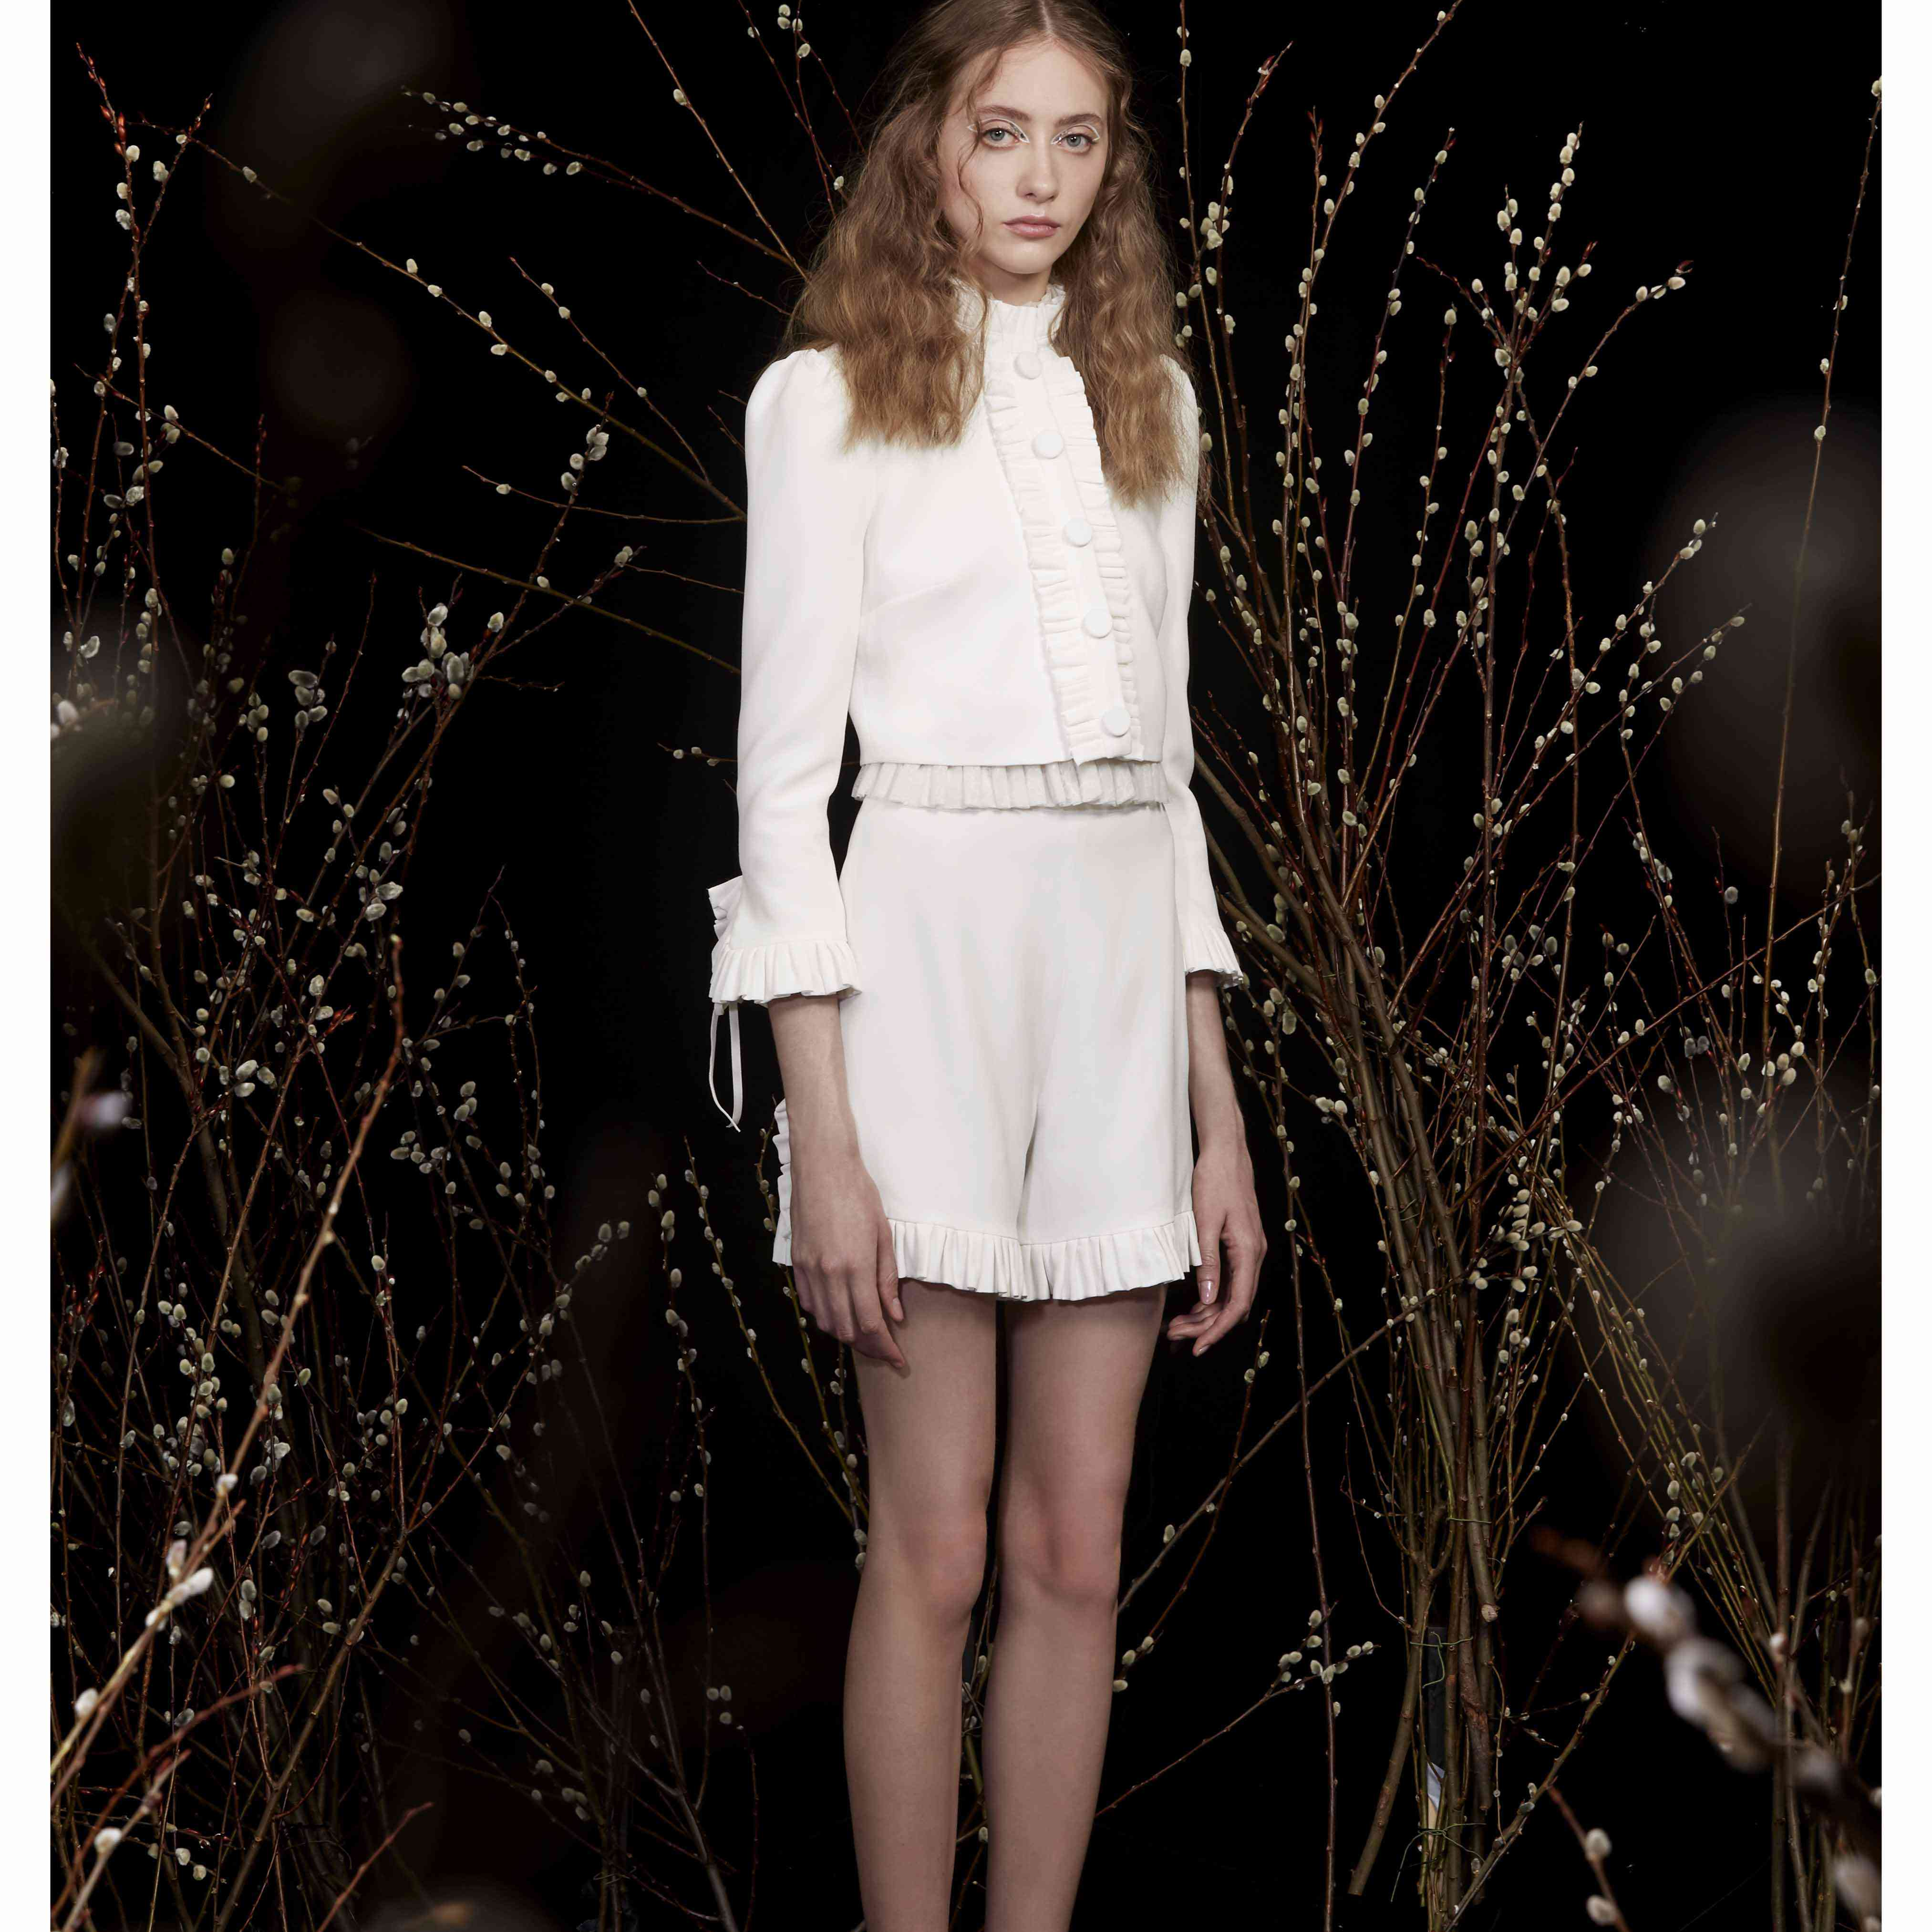 Model in crop wedding jacket and shorts